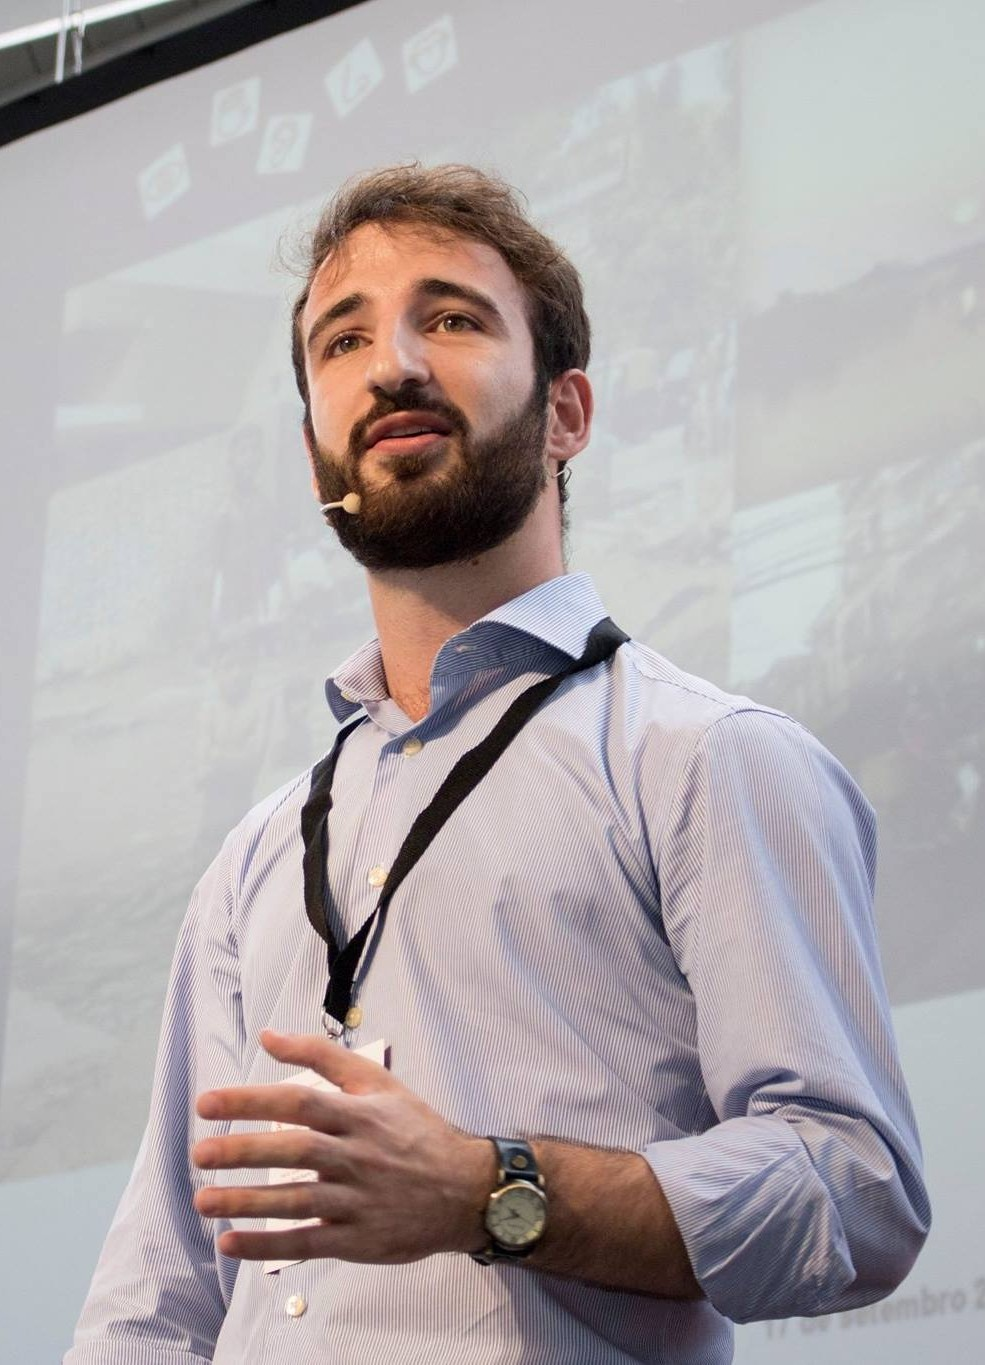 Rui Martins Ferreira - Founder and CEO at O Processo - Connecting Stories PARTTEAM & OEMKIOSKS